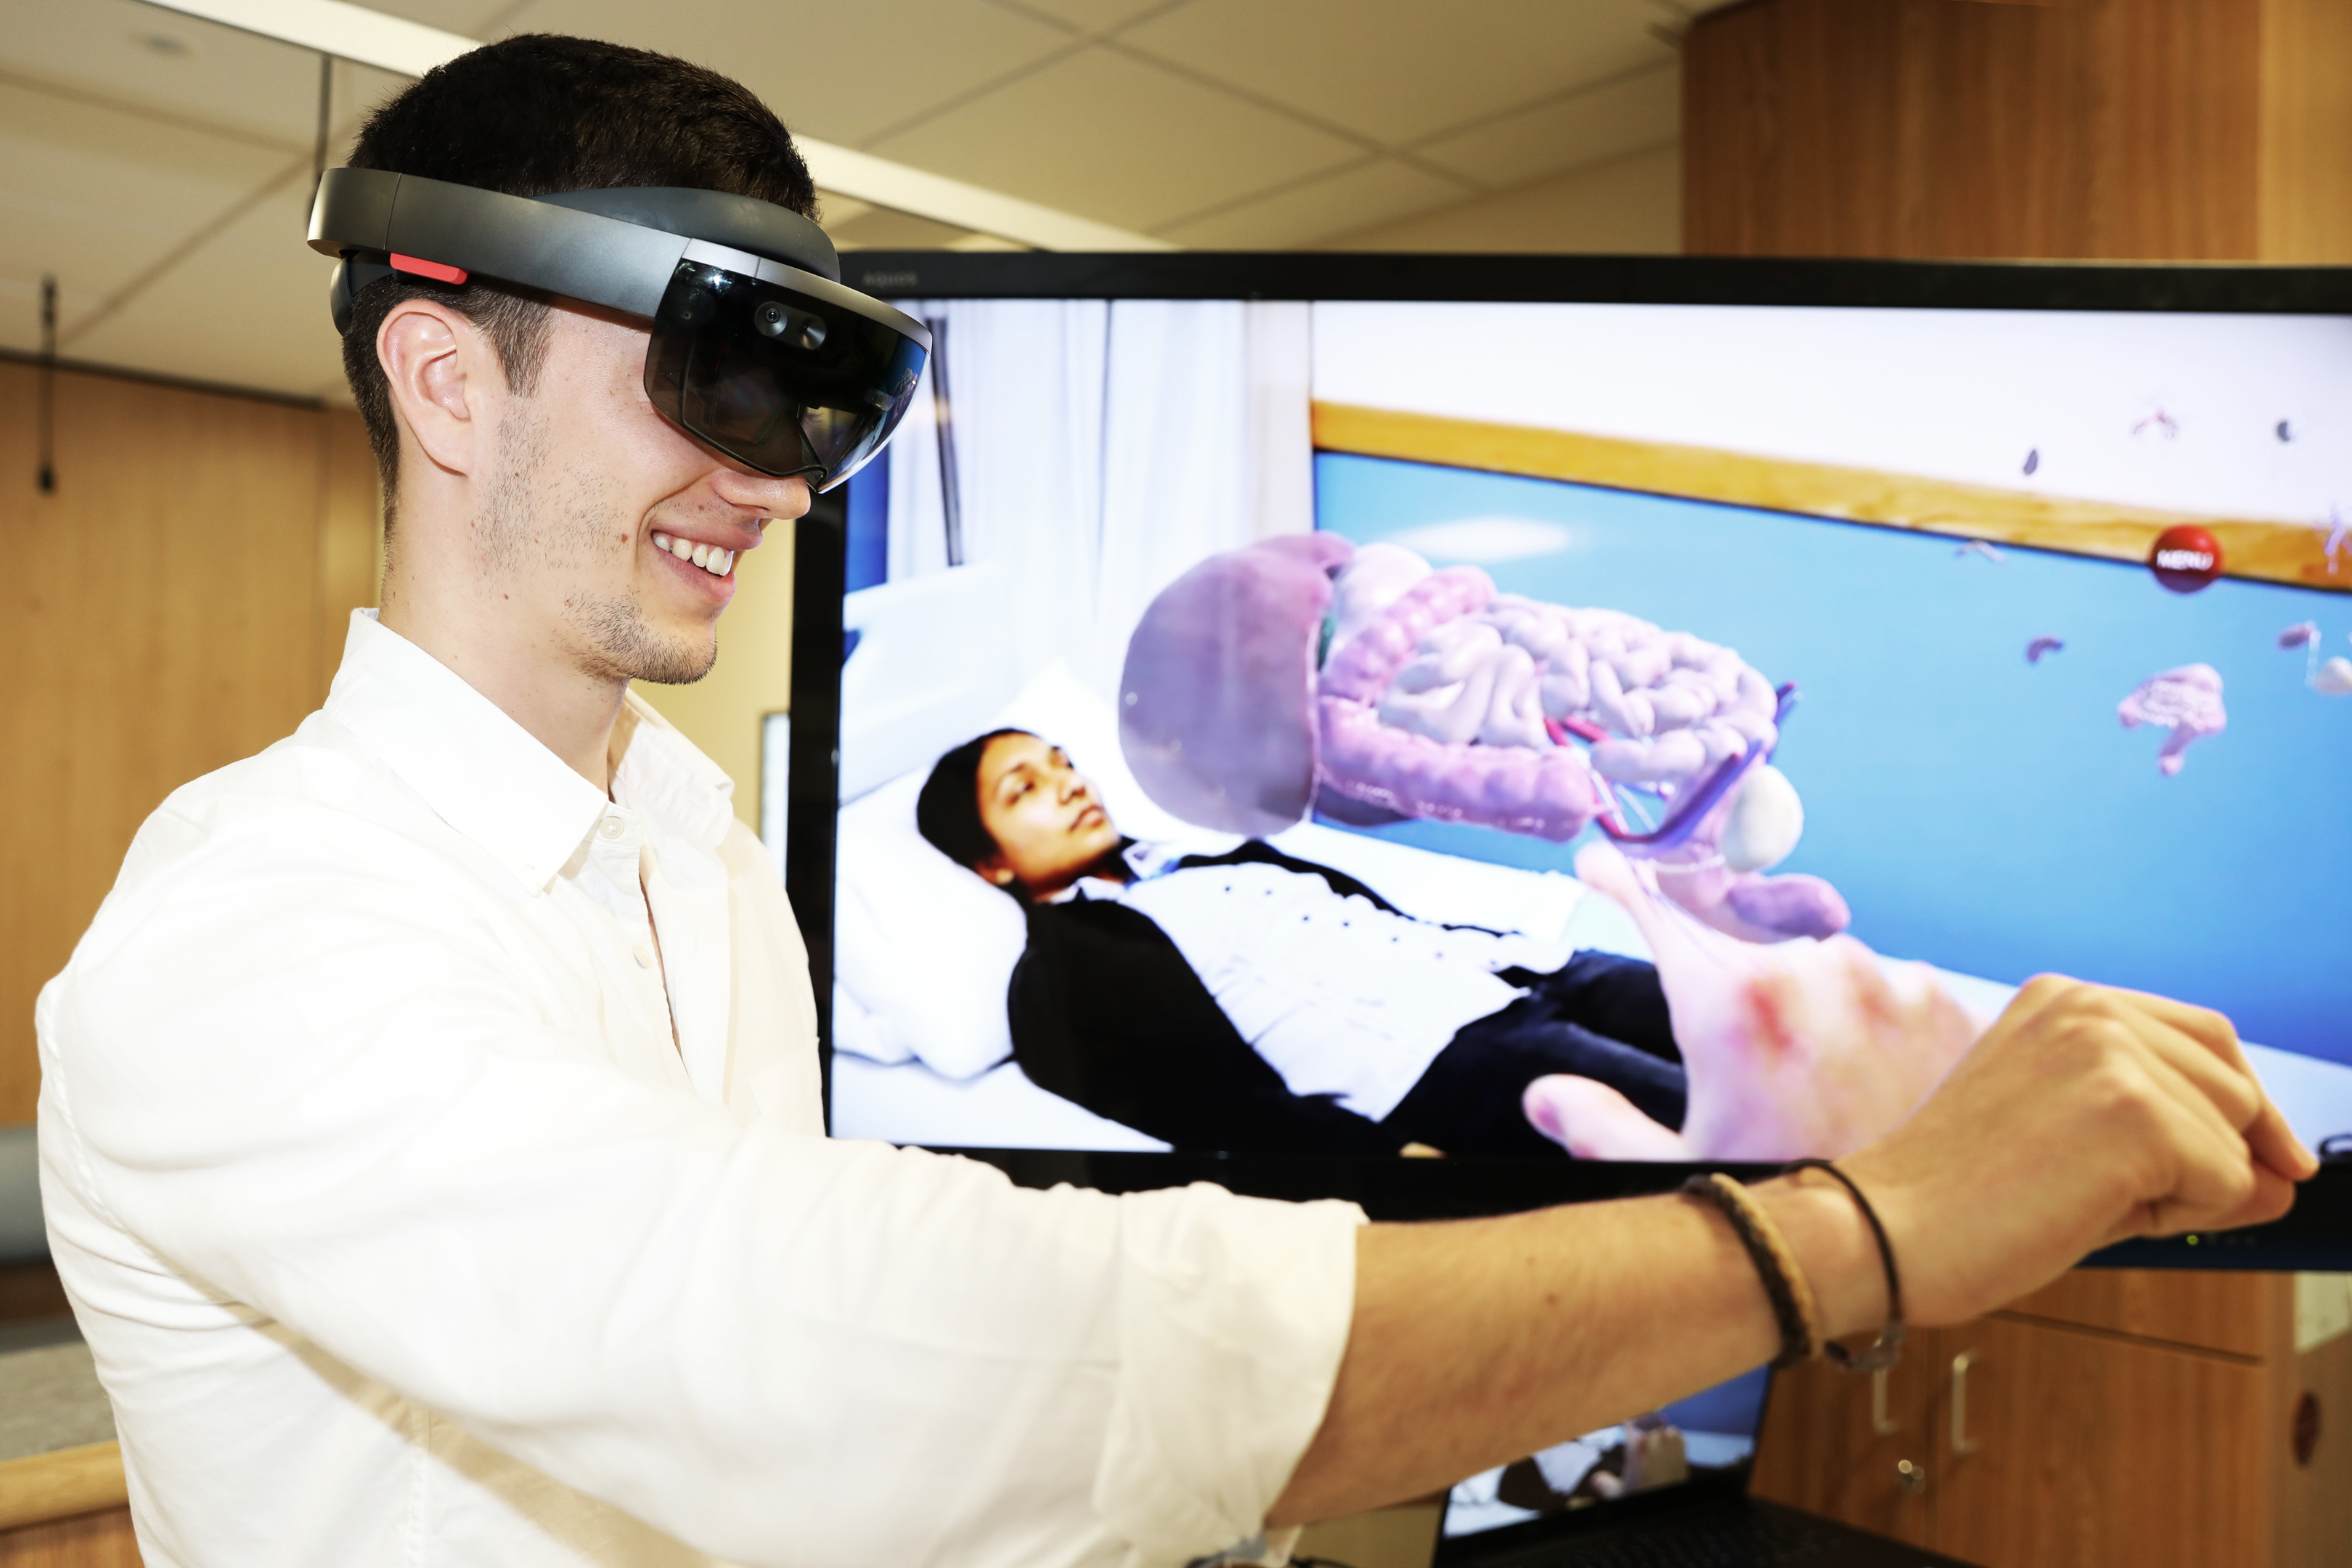 Virtual reality headsets and interactive anatomy stations are among the hi-tech innovations that feature in a new medical education training centre developed by the University of Dundee, NHS Tayside and industry partners Medtronic. Picture shows; Javier Suquia, Co-Founder of Immernova with Shereen Kadir posing as a patient, University of Dundee's Medical Artist and Content Developer.